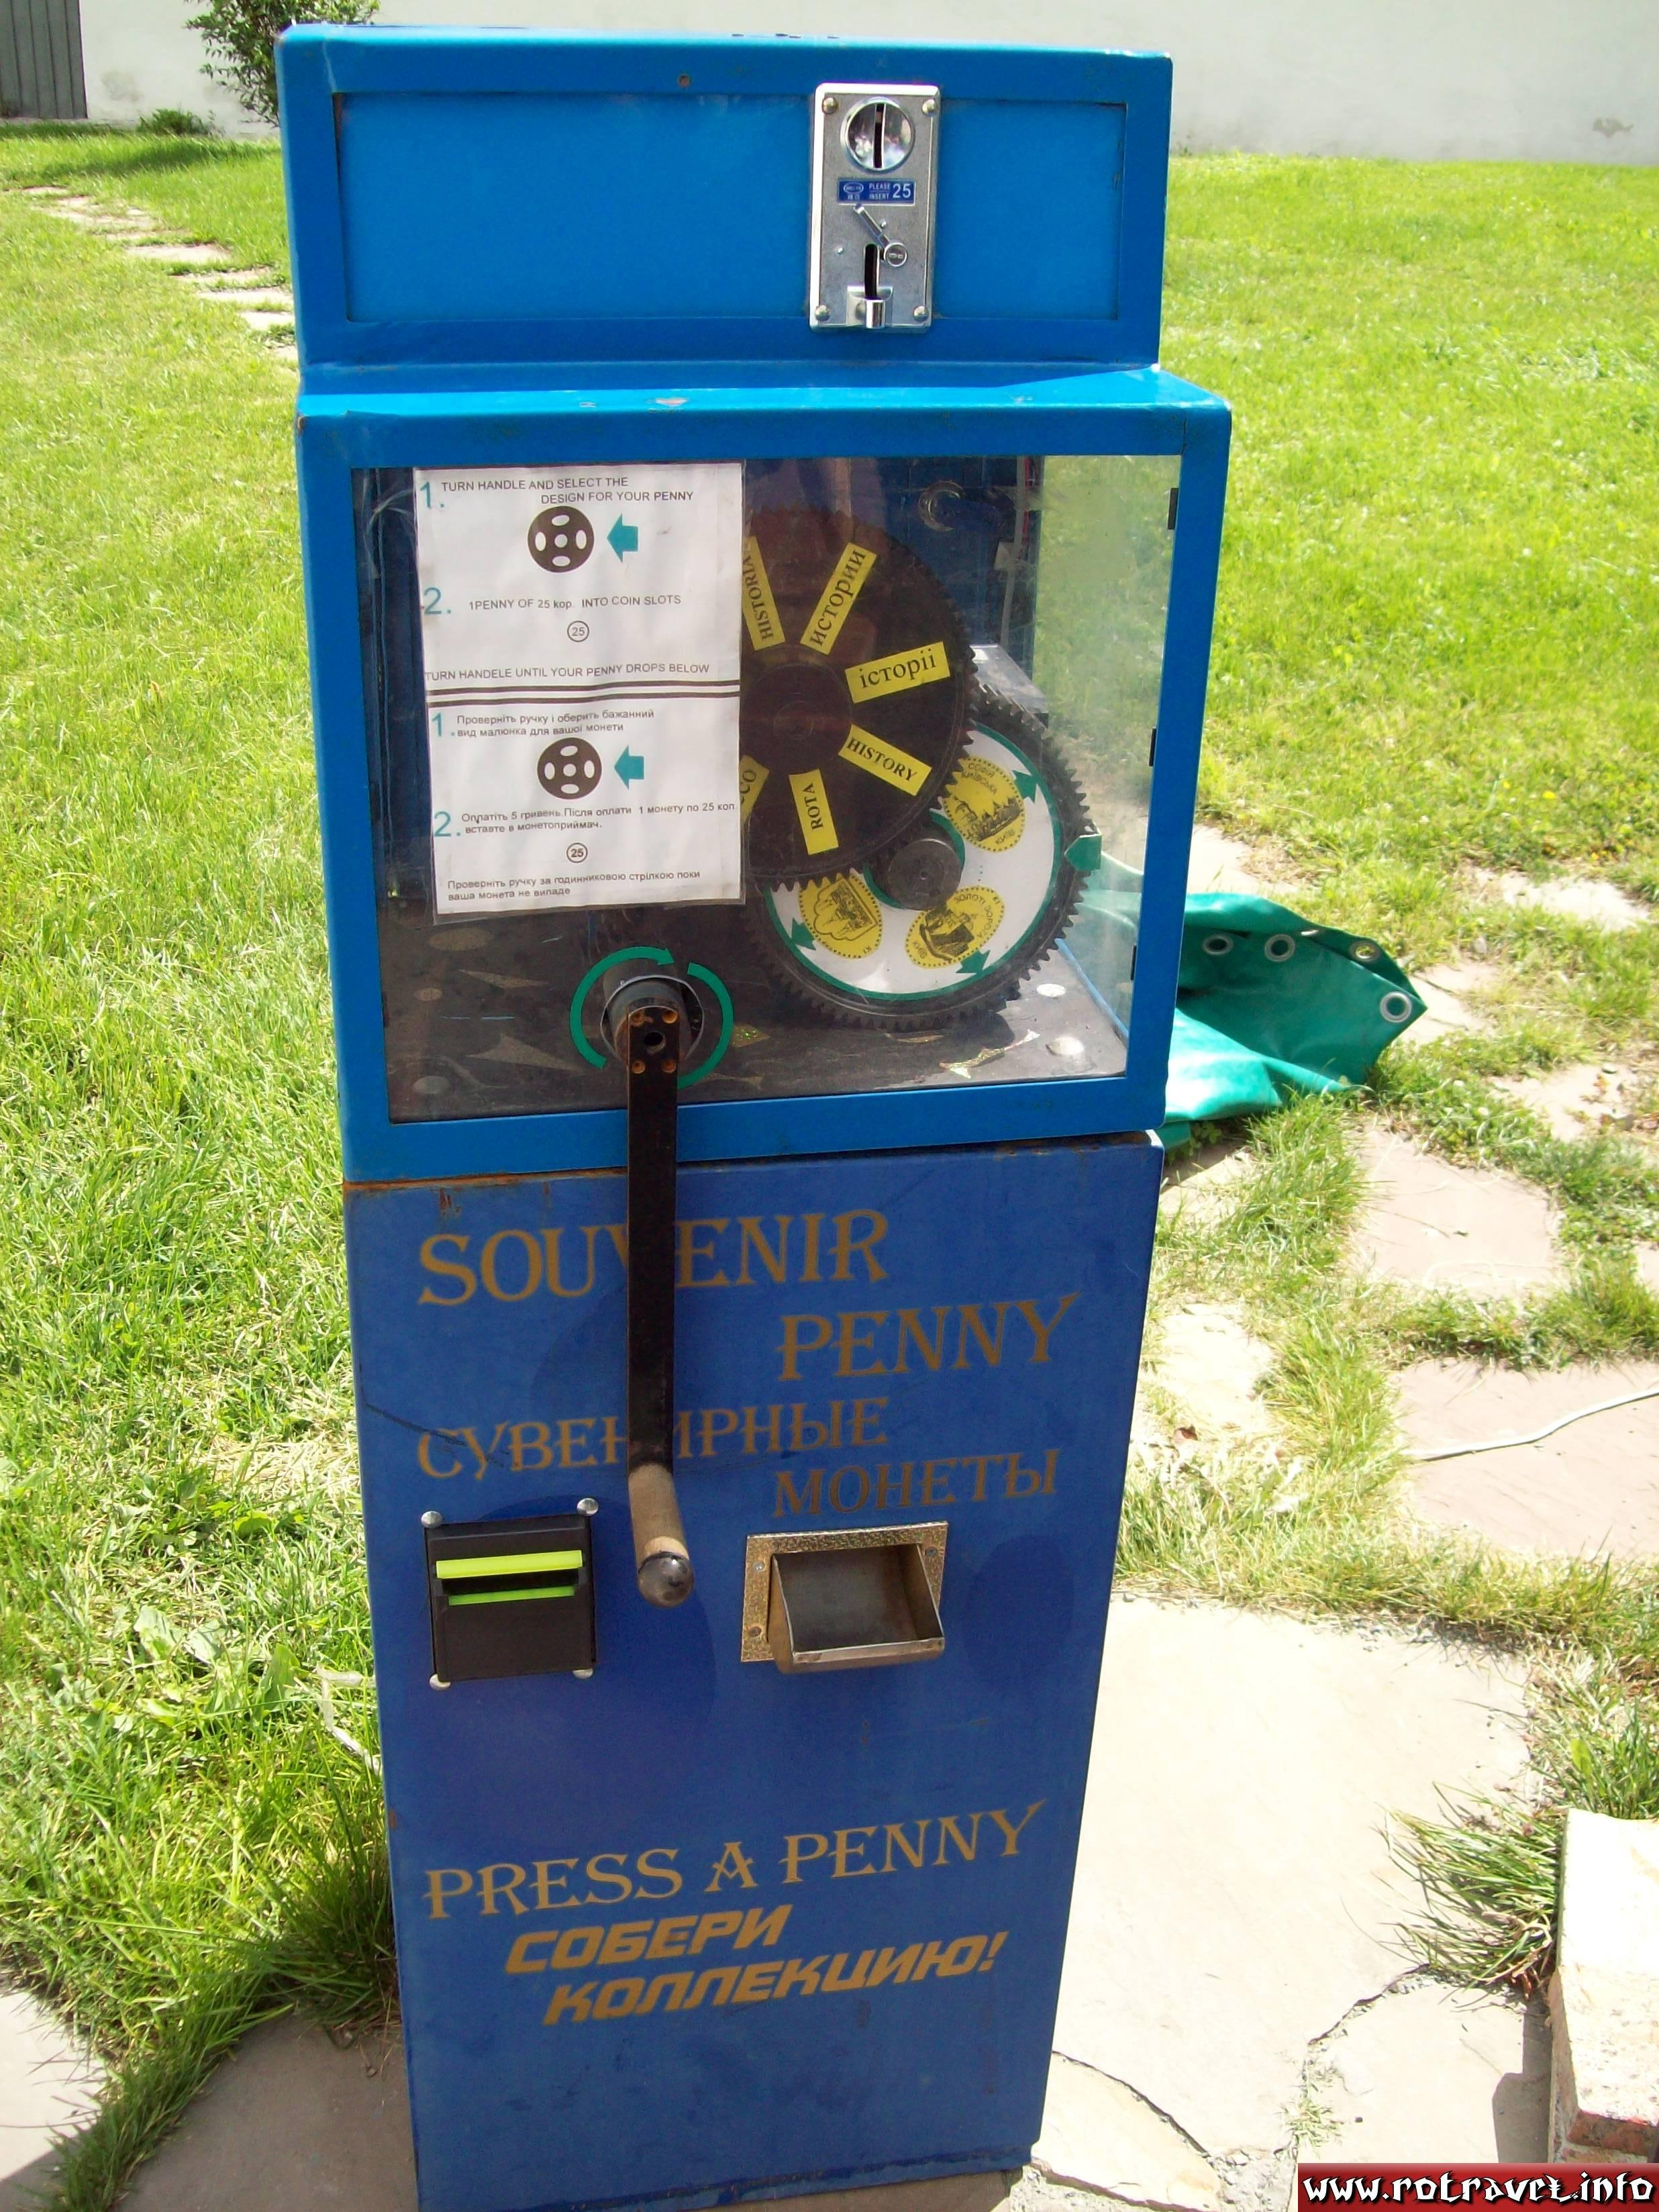 Souvenir penny in the garden of Saint Sophia Cathedral :)